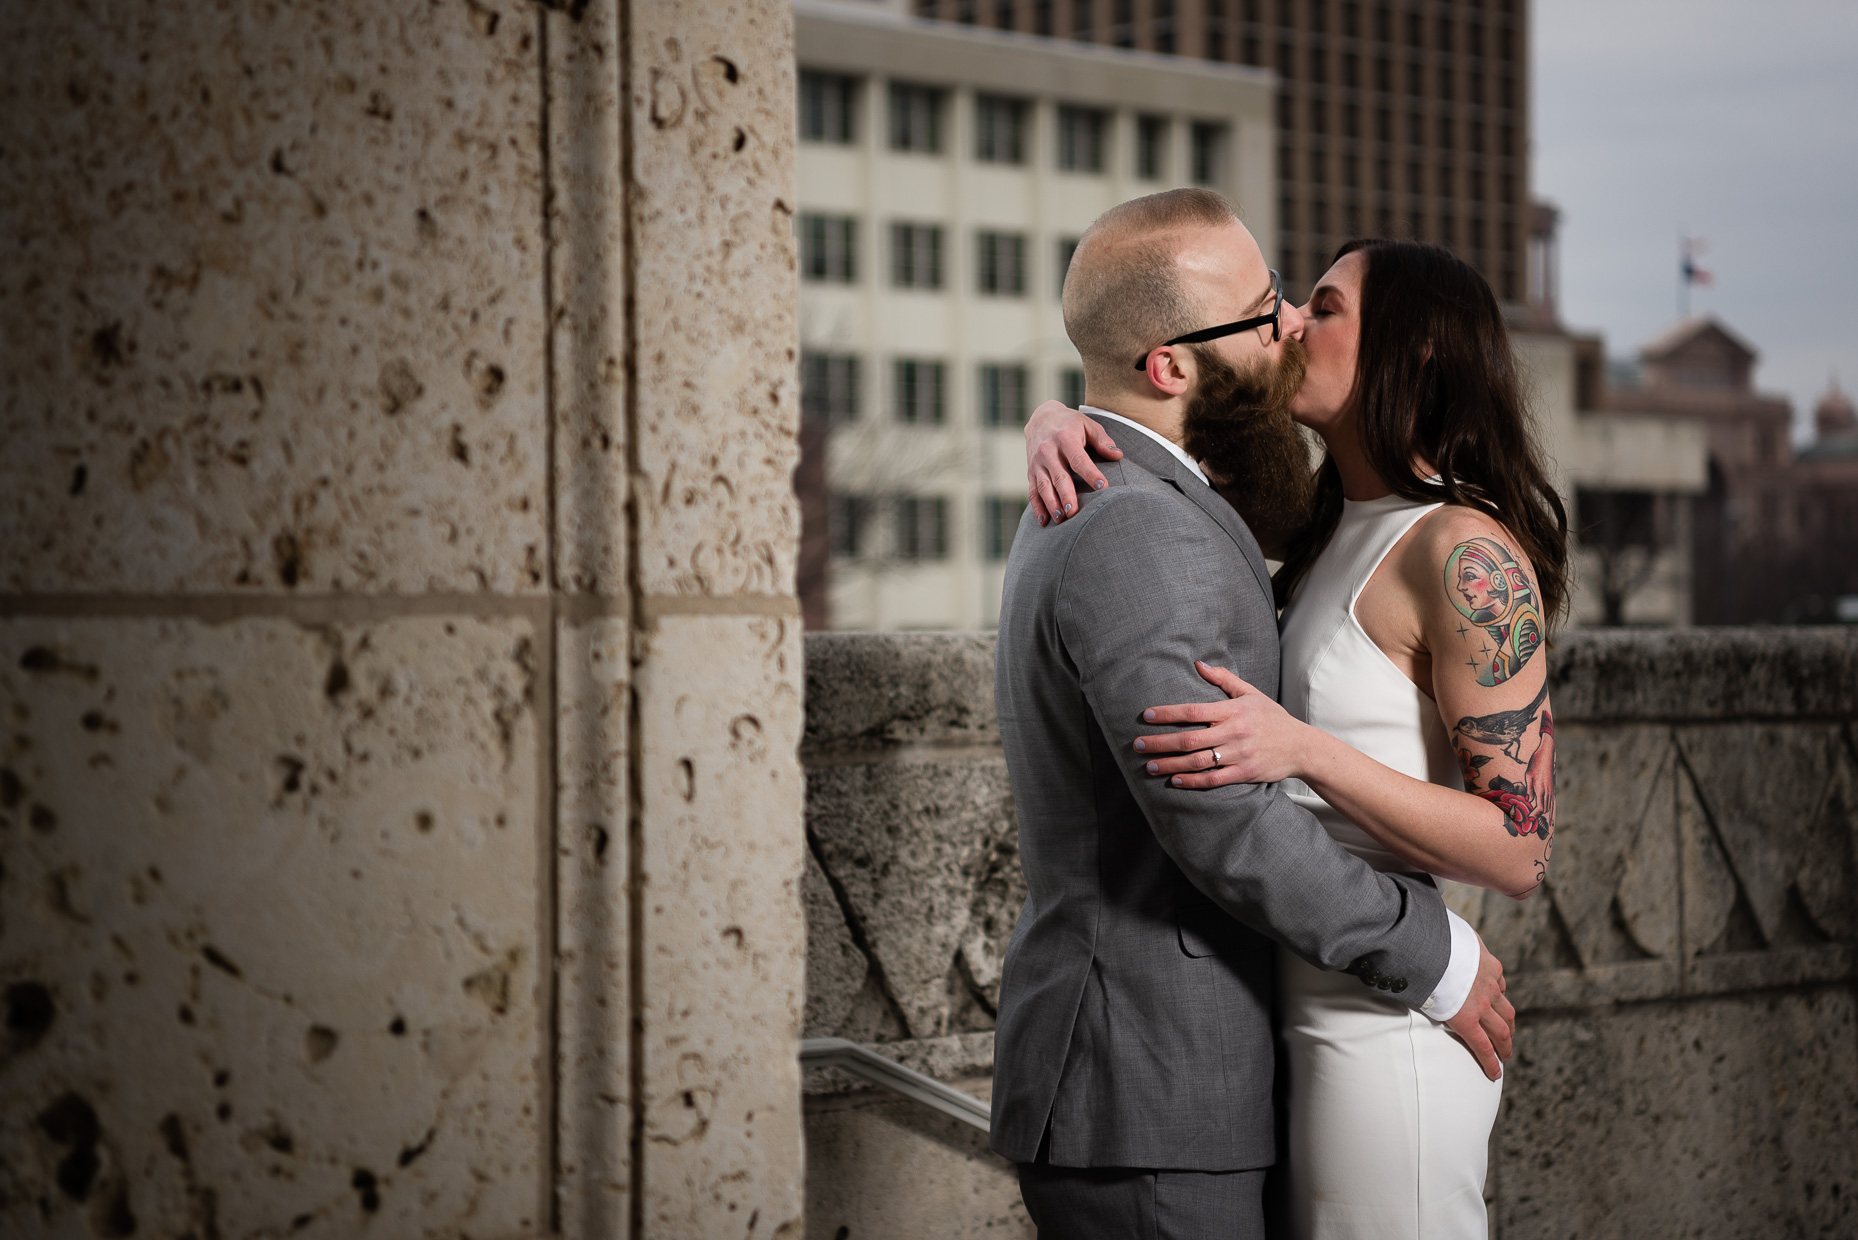 downtown-travis-county-courthouse-wedding-tattooed-bride-groom